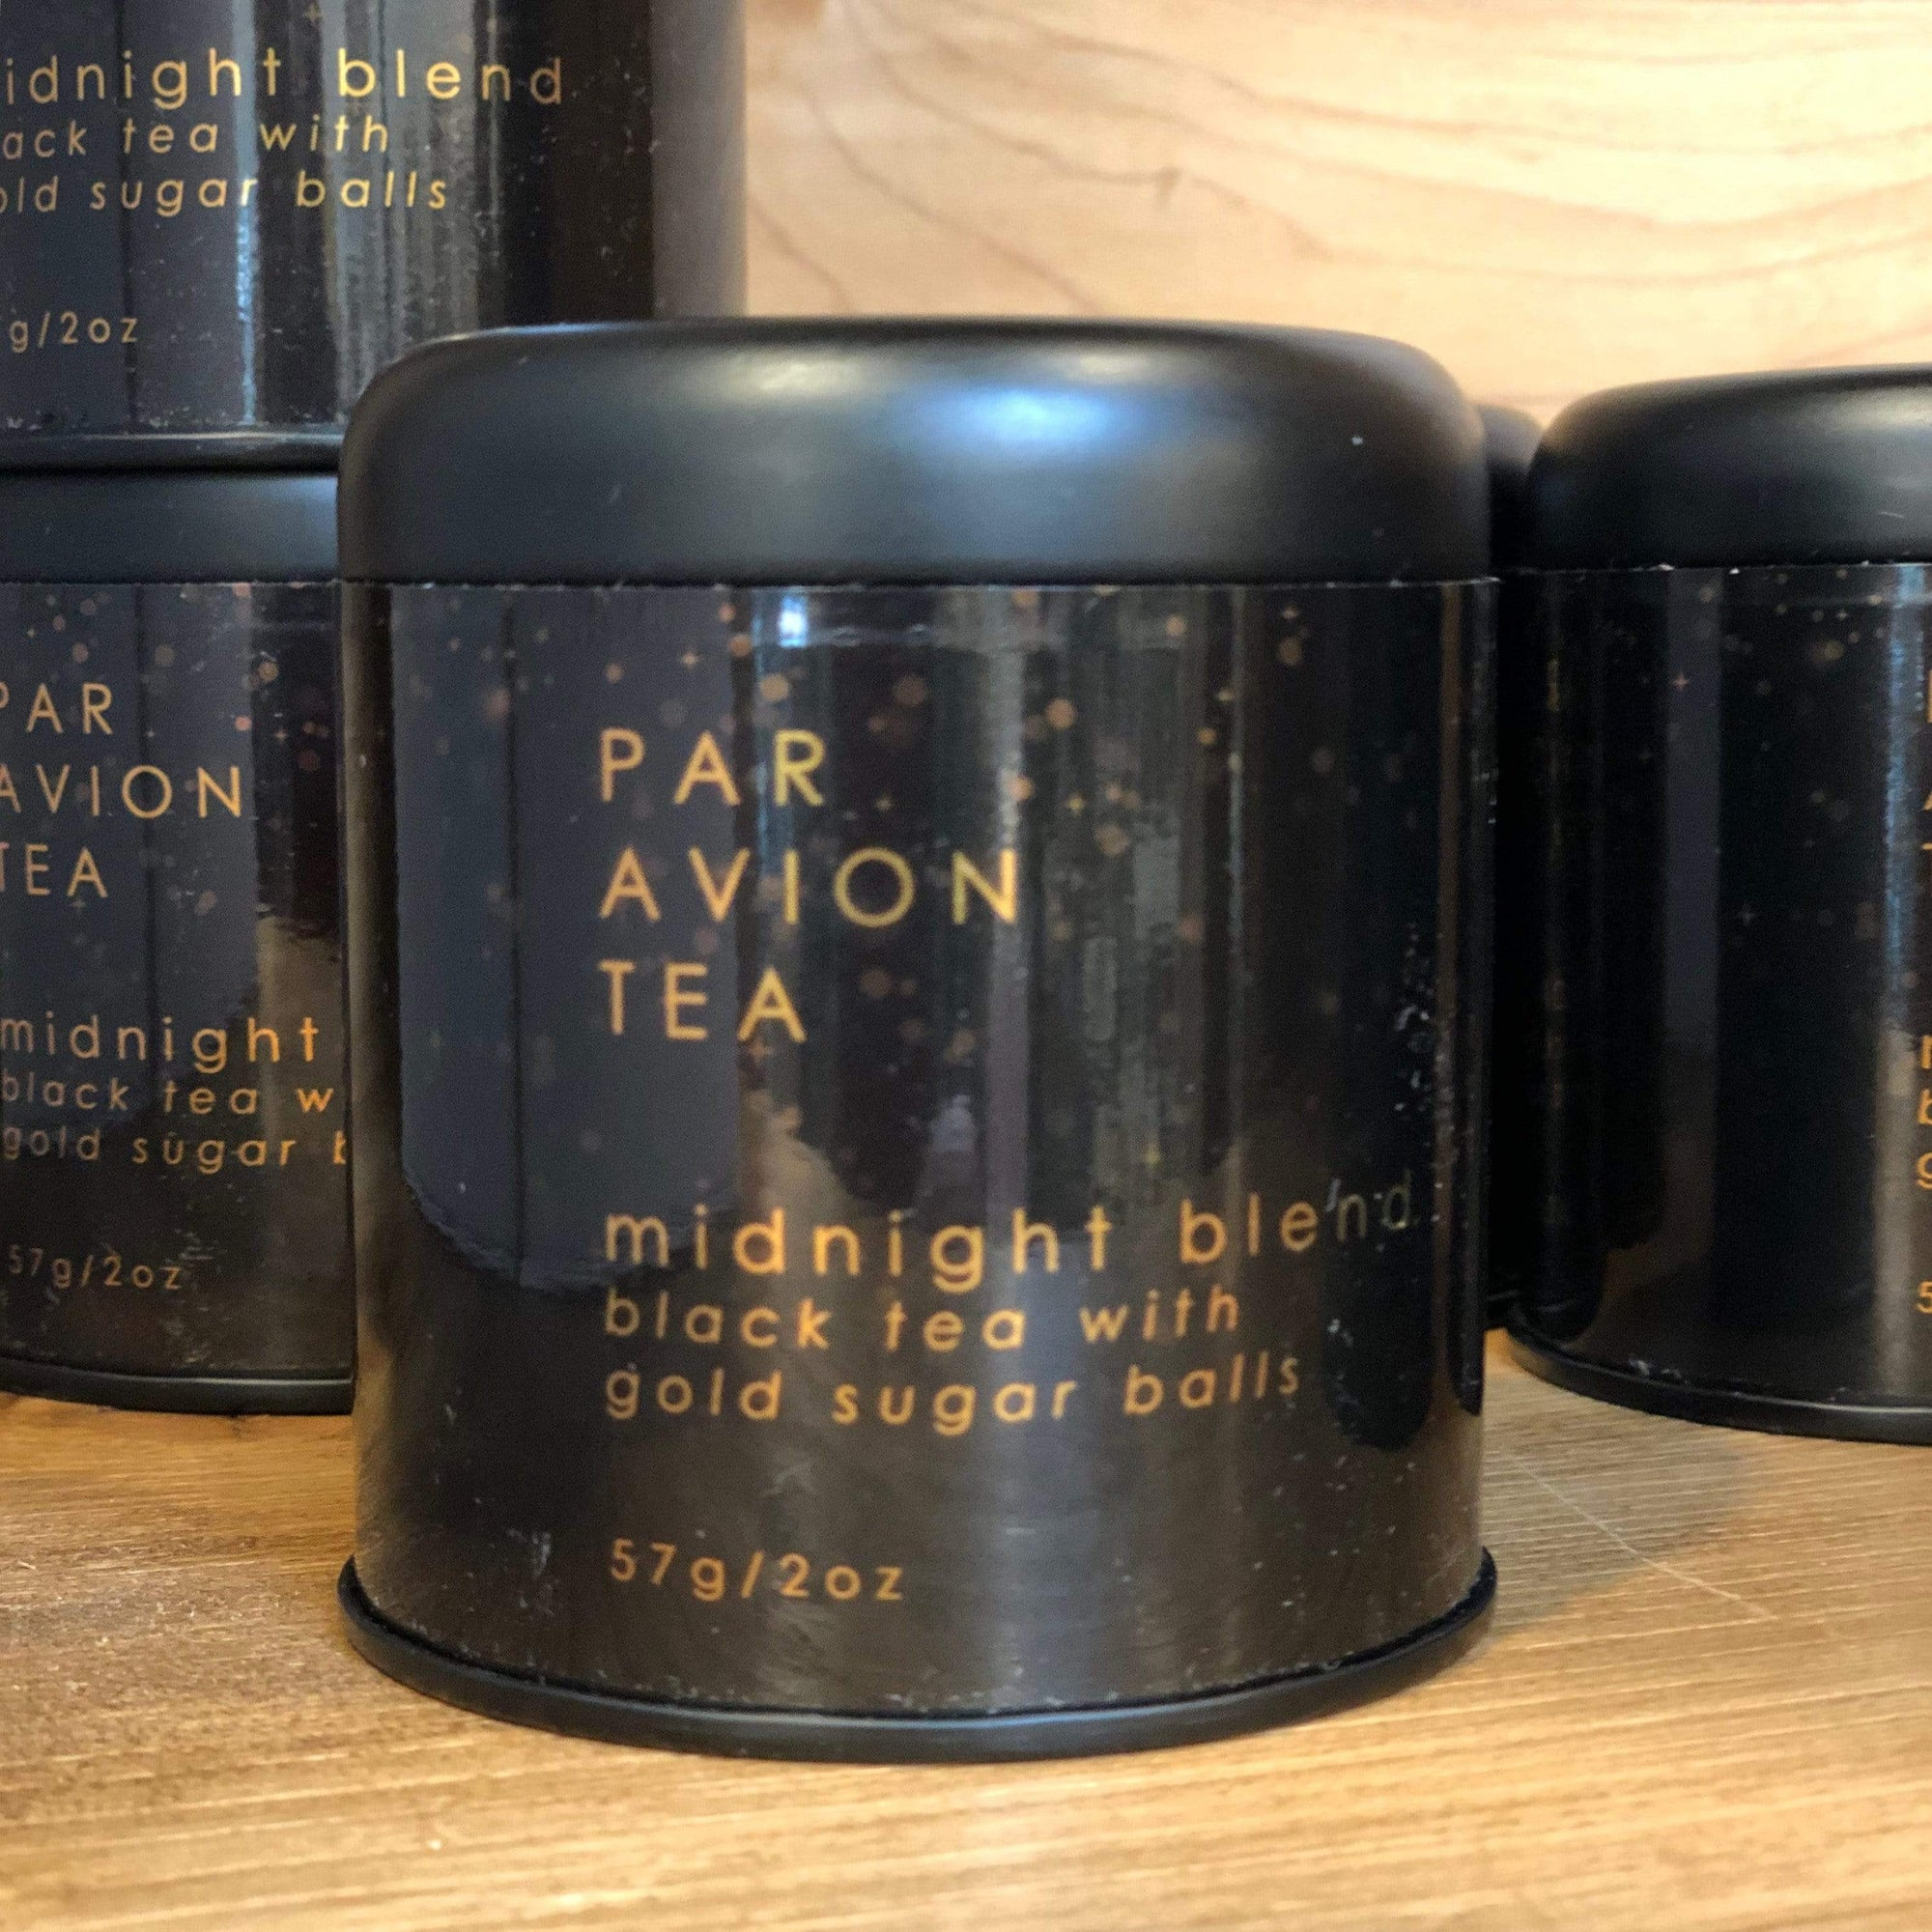 Par Avion Midnight Blend Glitter Tea - PORCH